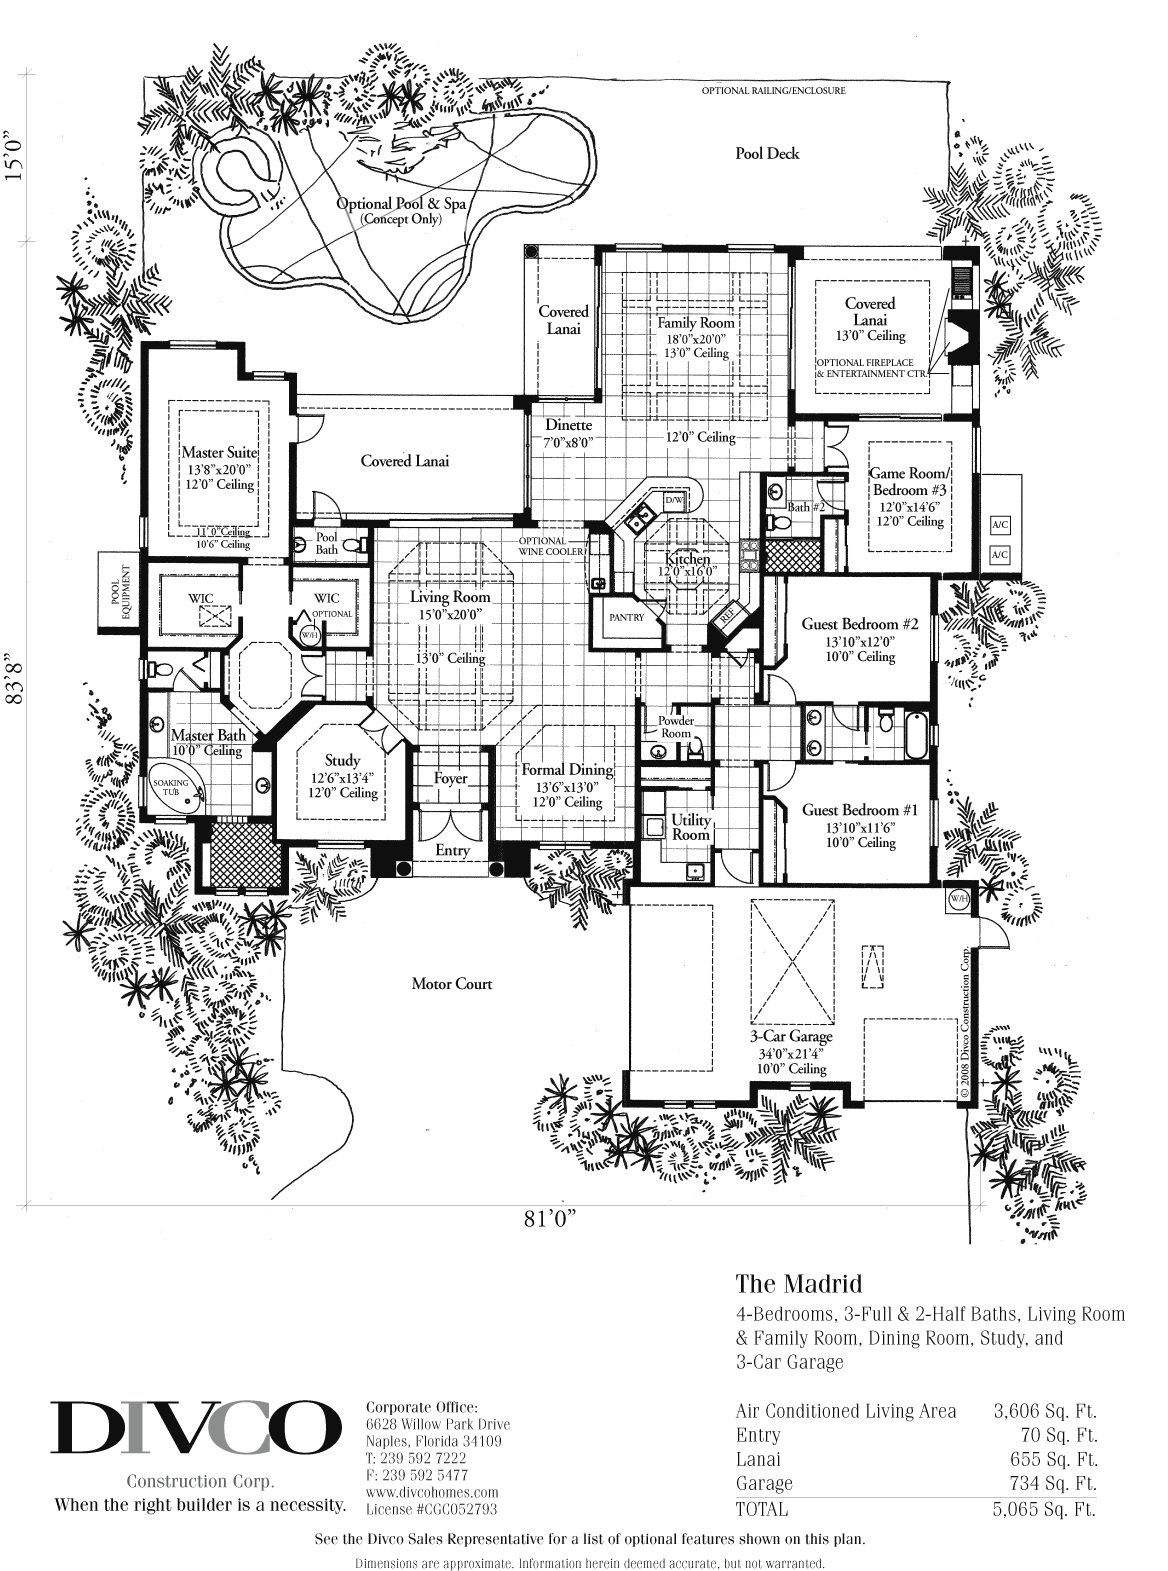 Luxury Home Floor Plans Madrid Floorplan Floorplan Of A Luxury Home By Divco Construction Napl House Floor Plans Floor Plan Layout Home Design Floor Plans